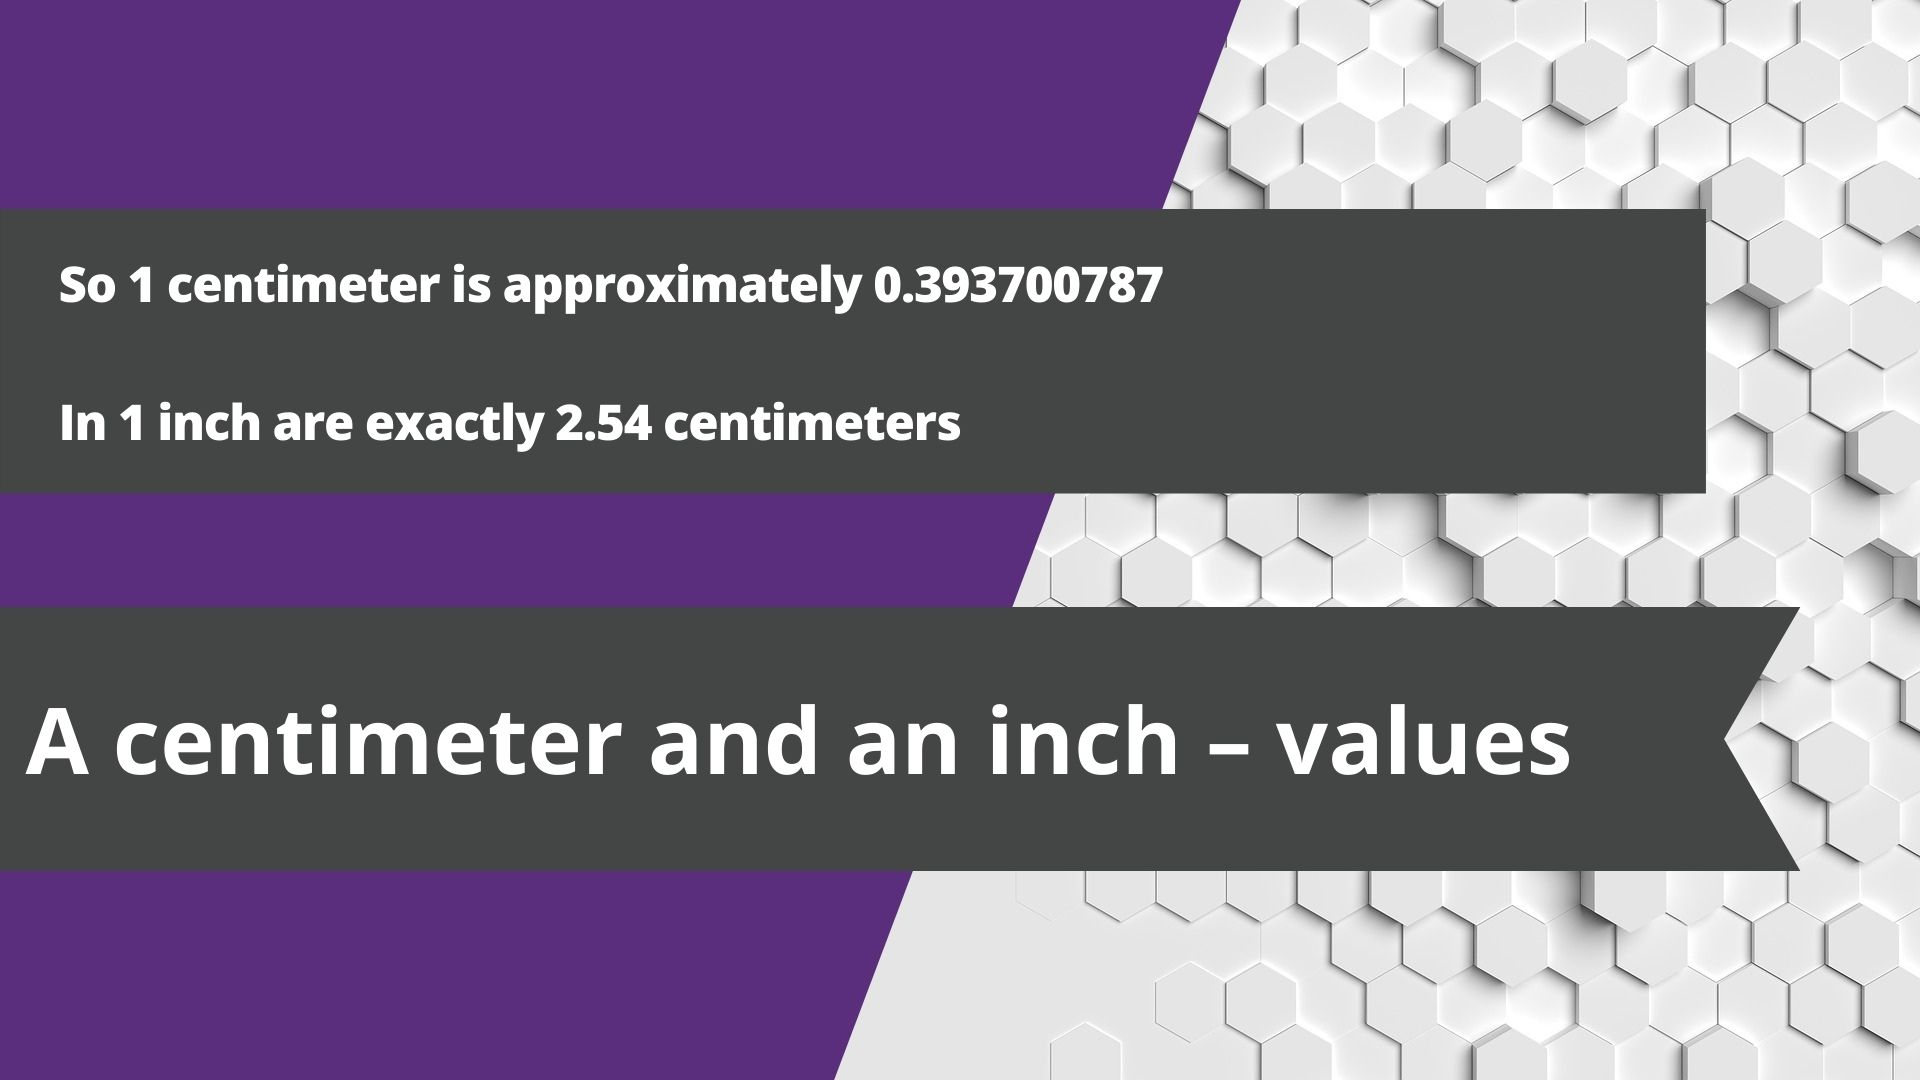 A centimeter and an inch – values